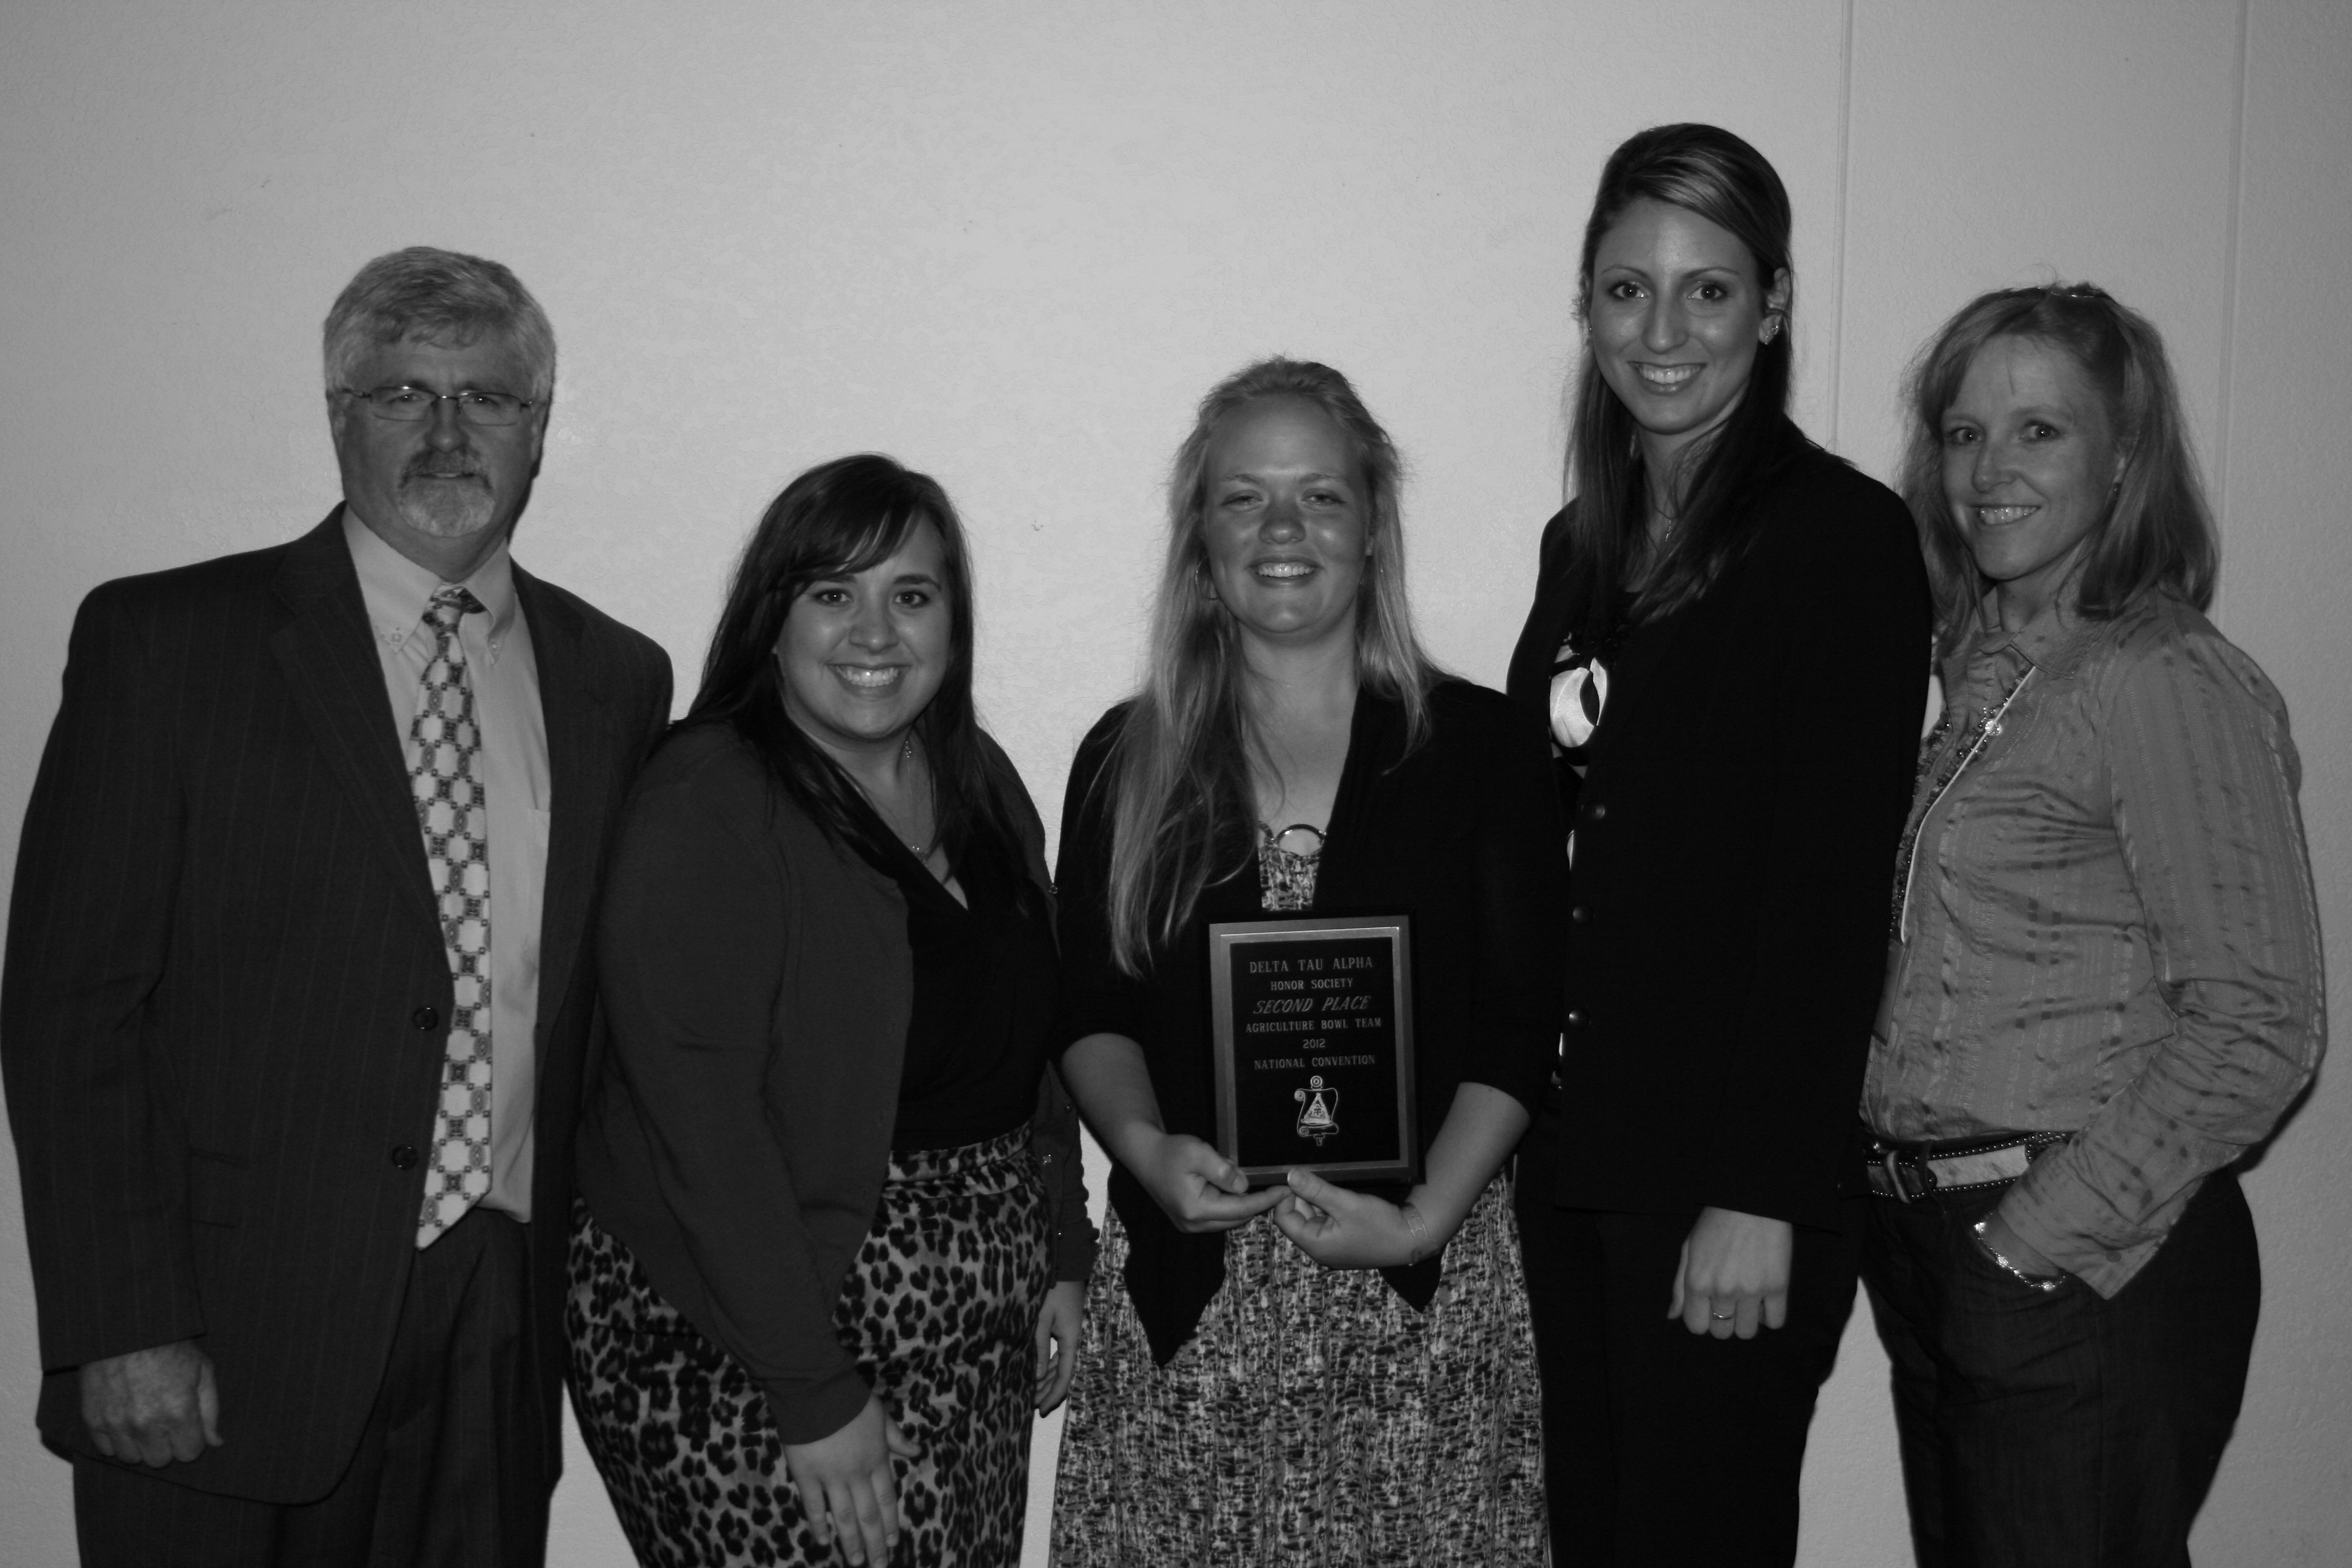 School of Agriculture Honor Society places 2nd in National Quiz Bowl; Elected as National President.